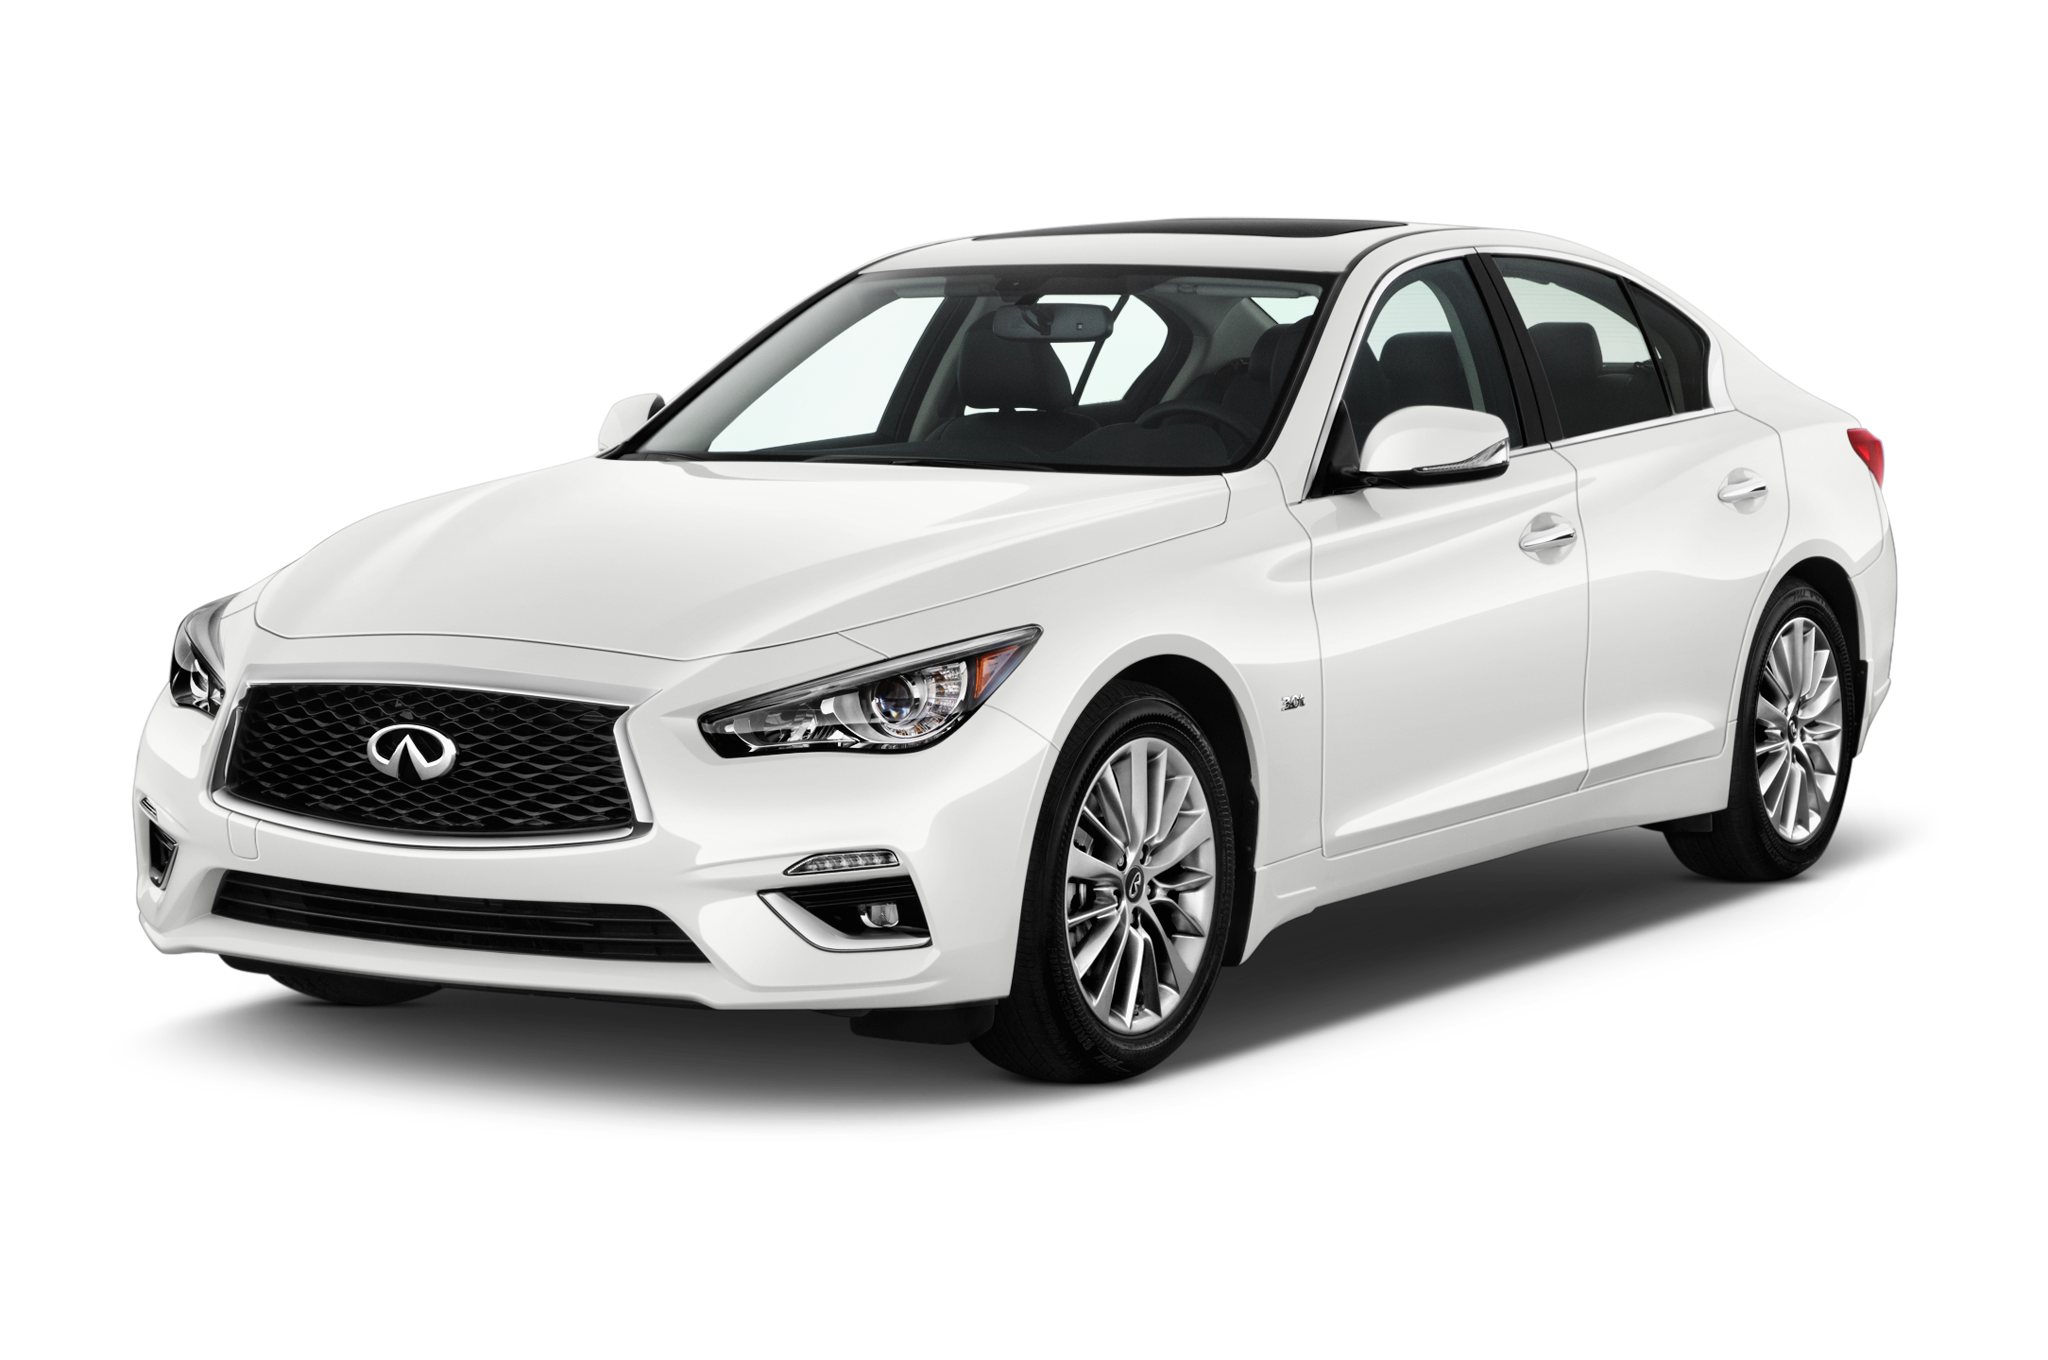 2018 infiniti q50 rolls off the line in japan automobile magazine. Black Bedroom Furniture Sets. Home Design Ideas